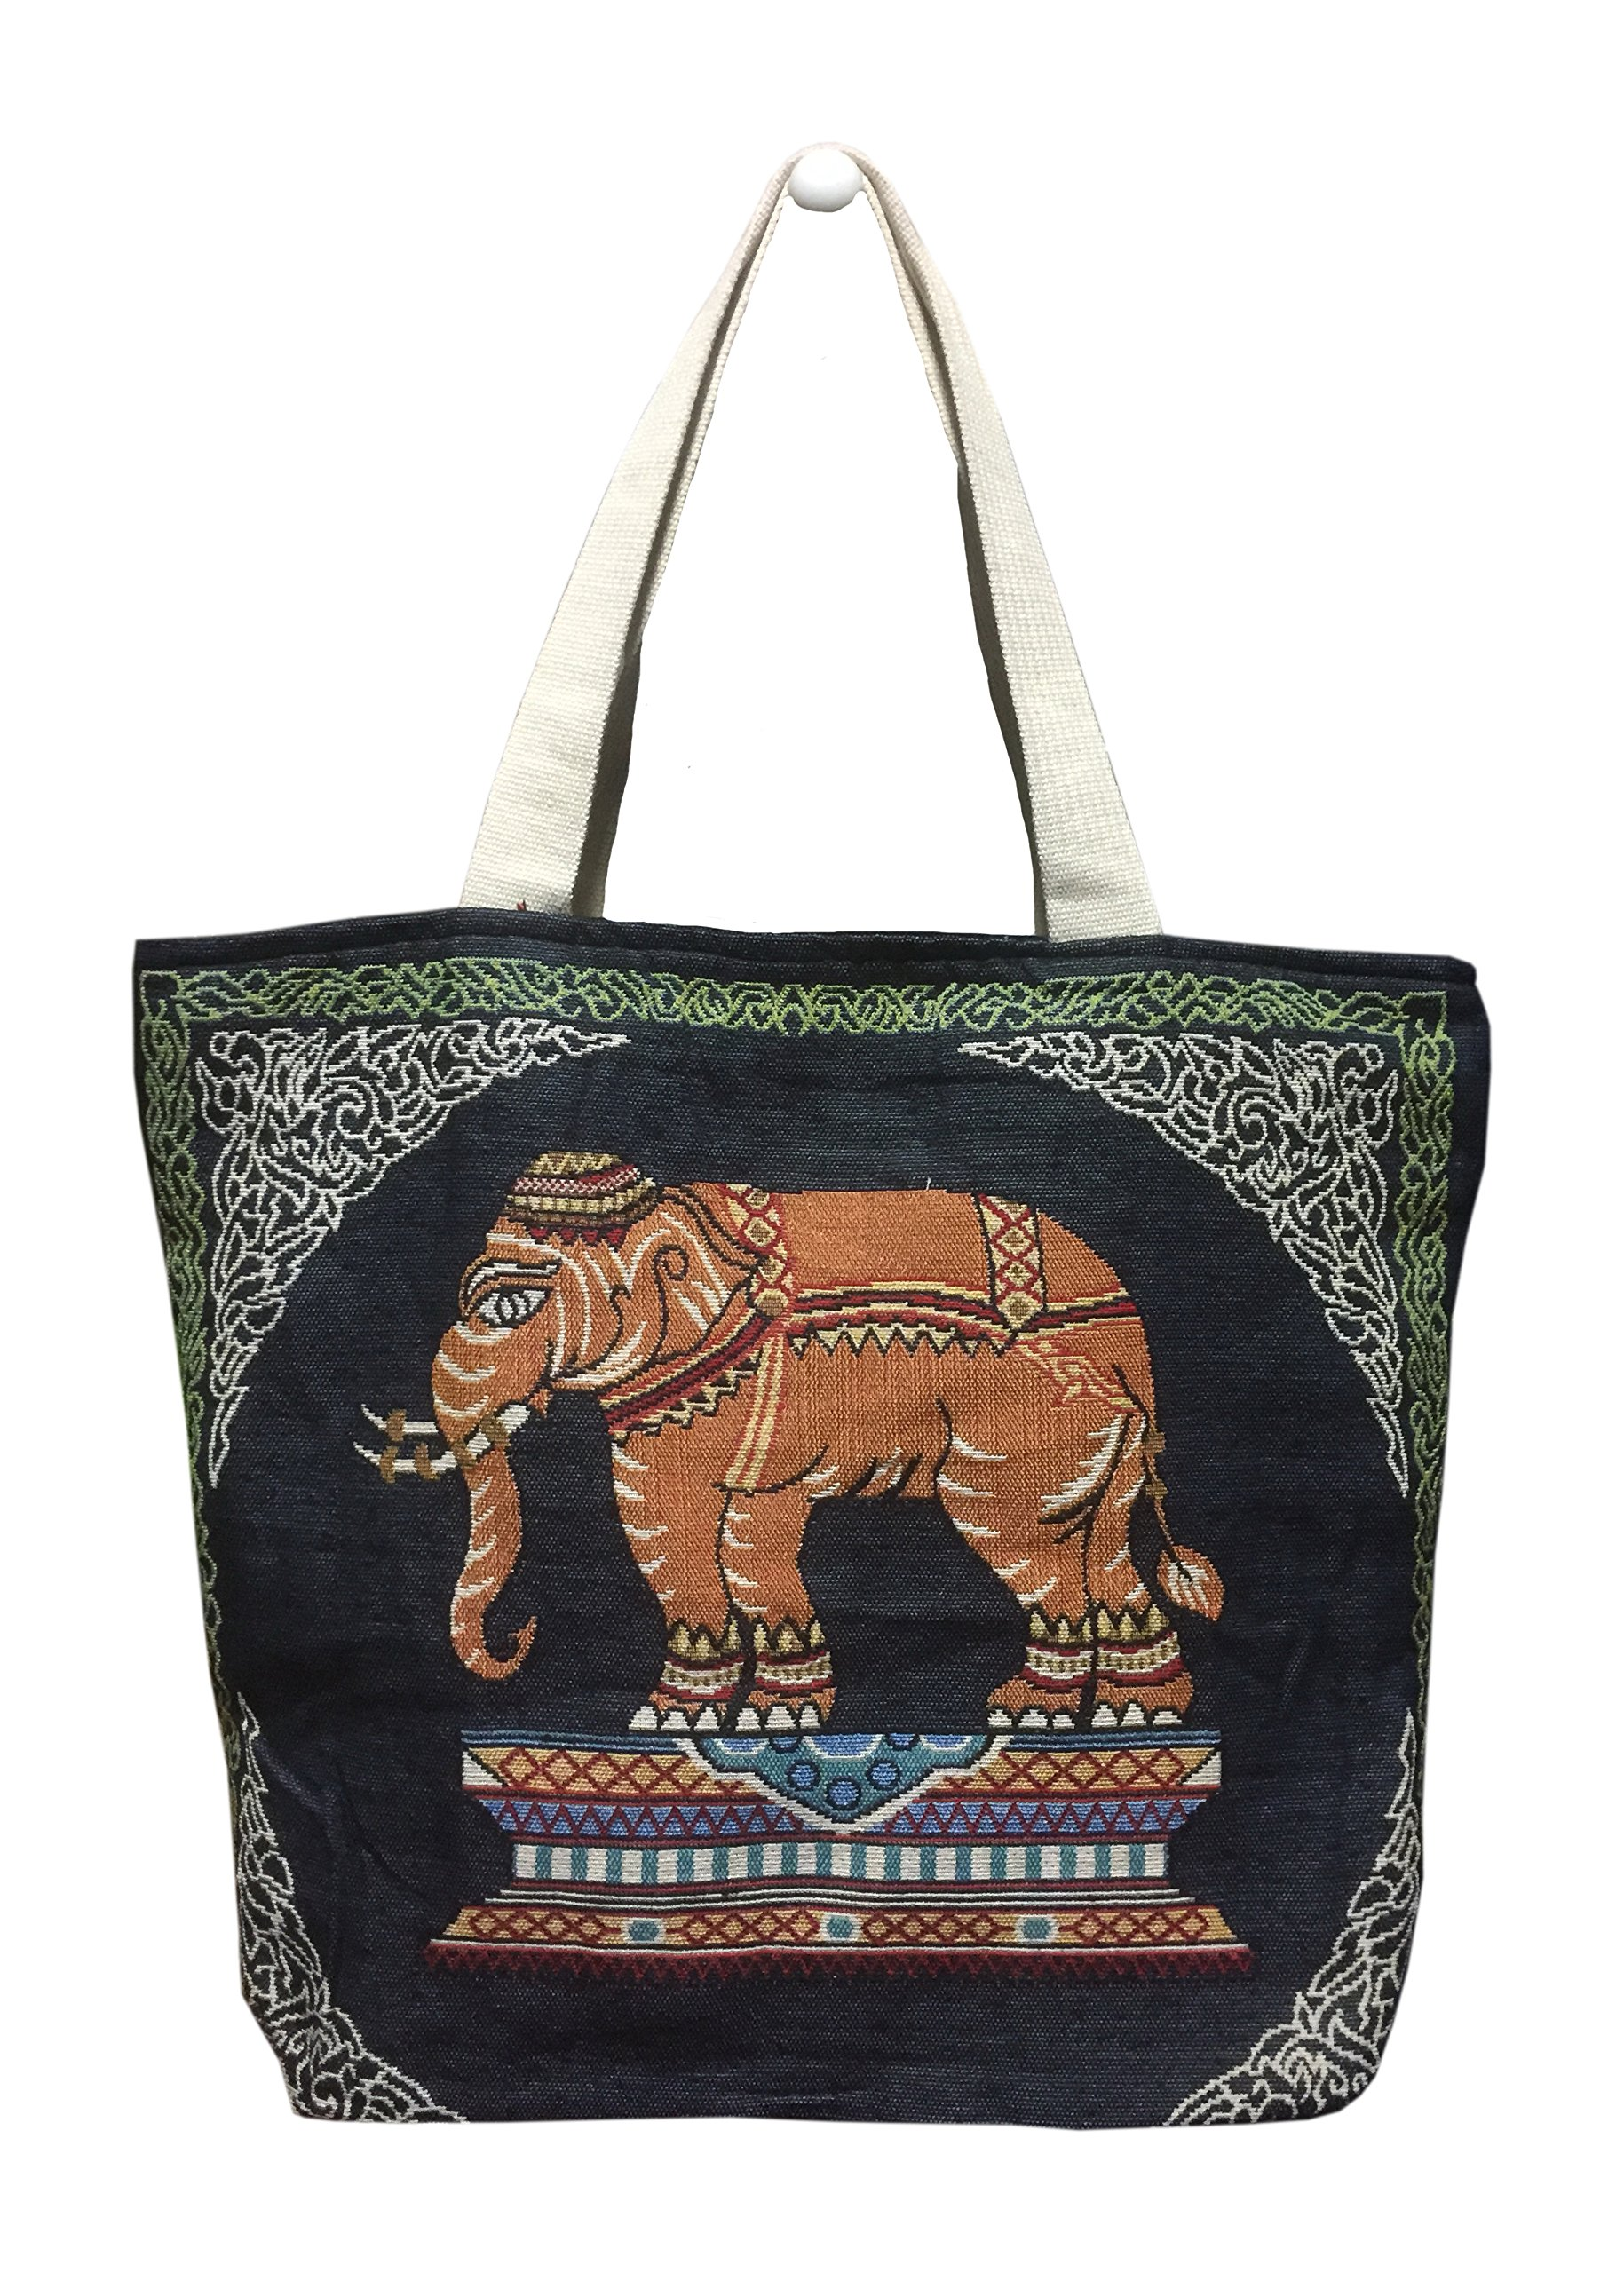 PJ Thai Design Cotton Handbag - Bag for Women Elephant Print, Personalized Shoping, Holiday, Beach (BLUE)